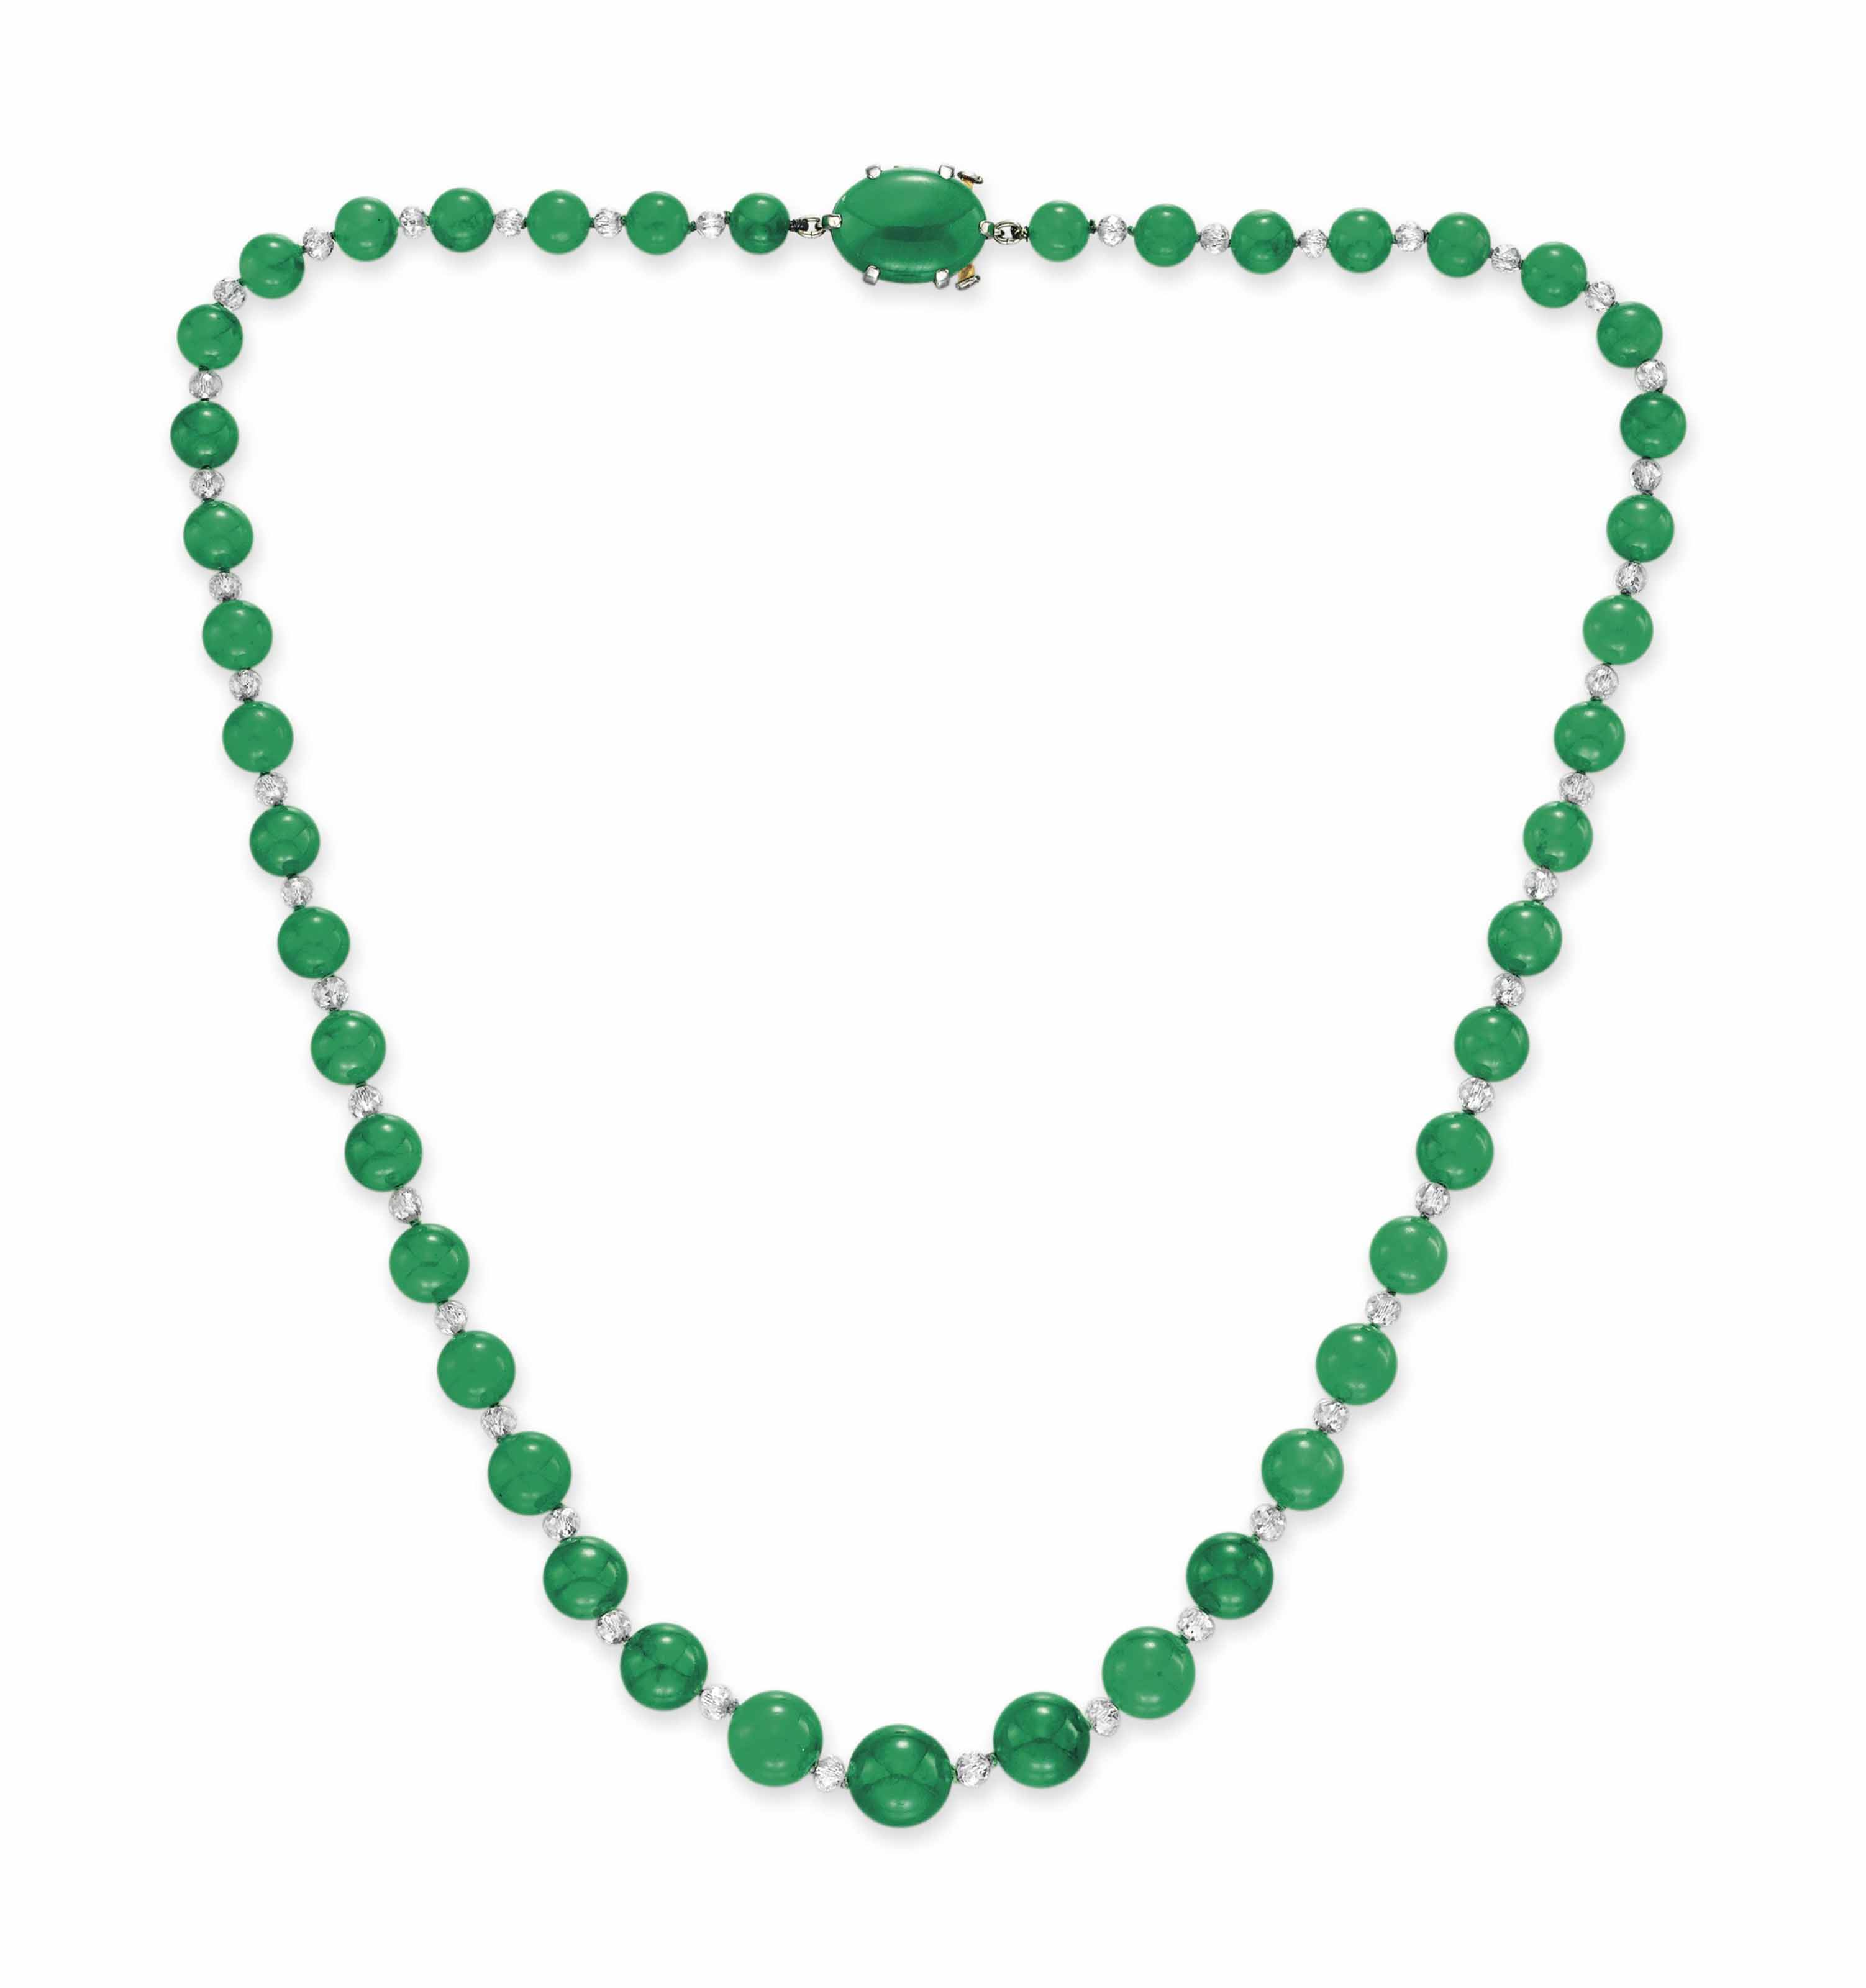 mottled bead a necklace look green nyr christie beads s jade polished long pale